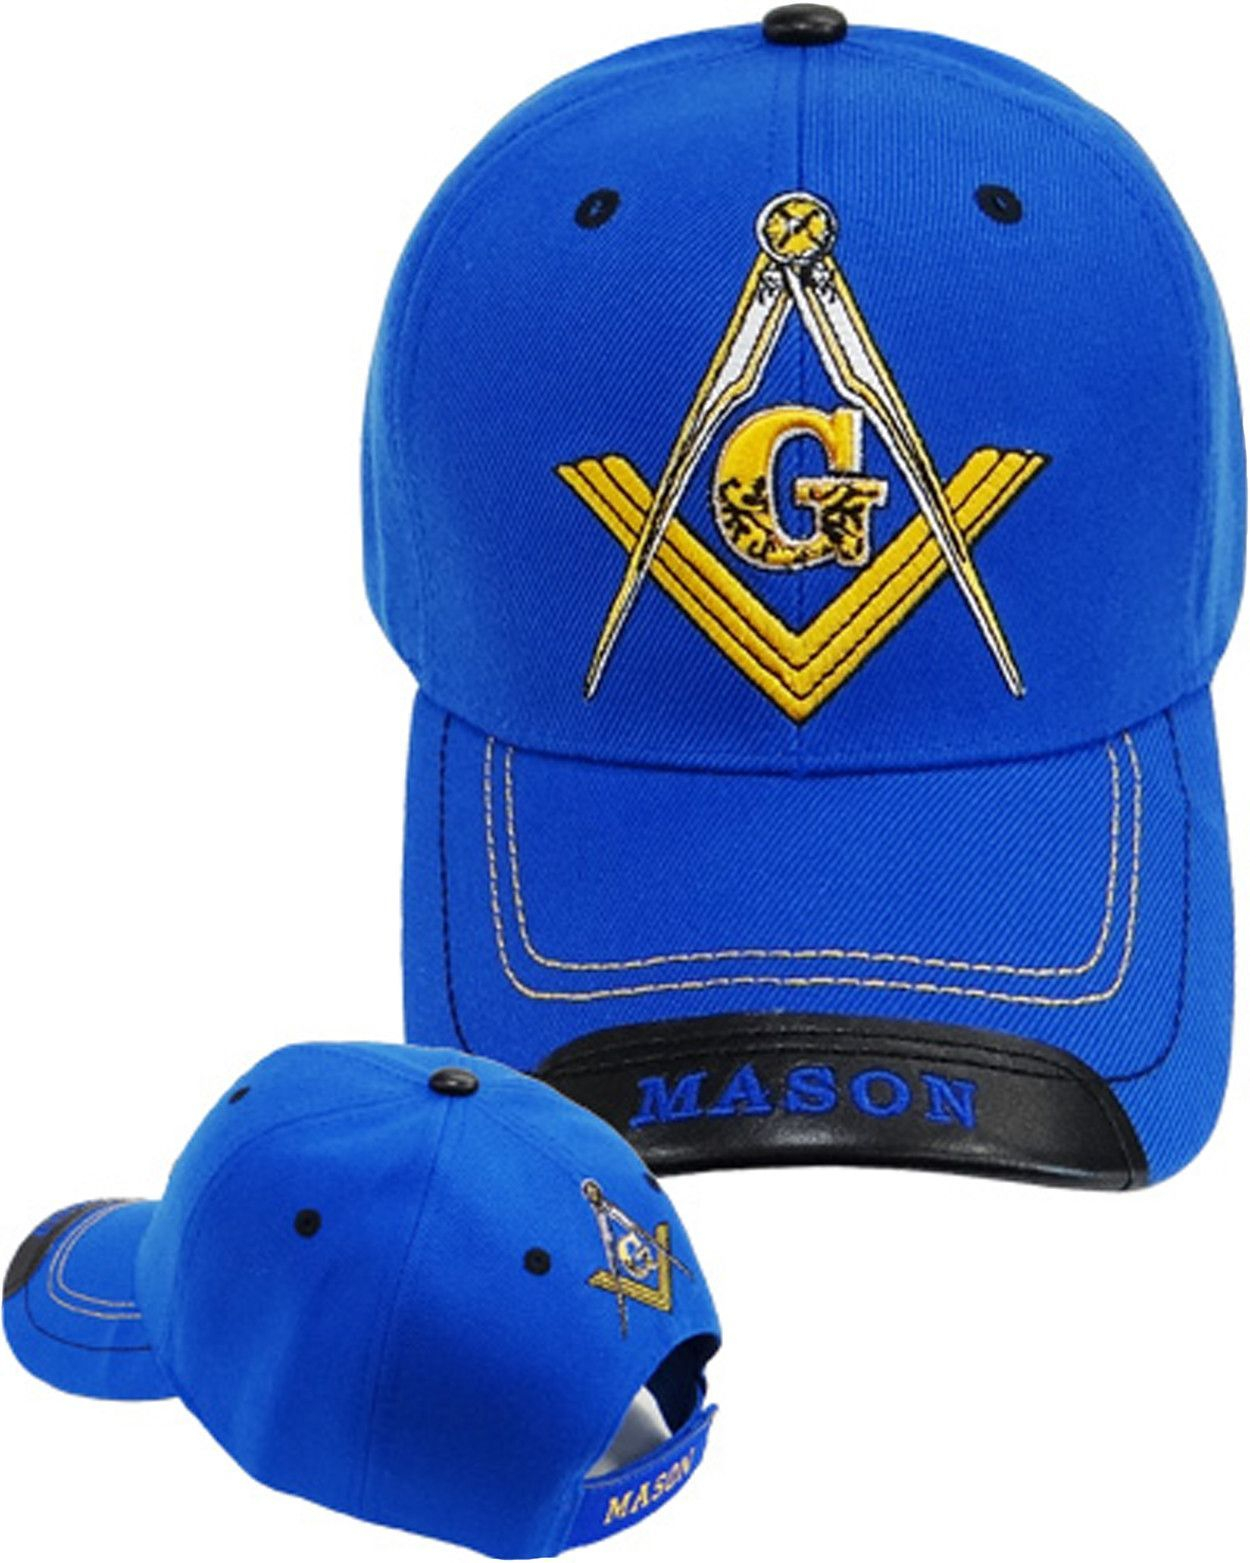 1fd7640af Mason Hat Blue Baseball Cap with Masonic Logo Freemasons Shriners Prince  Hall Lodge Headwear